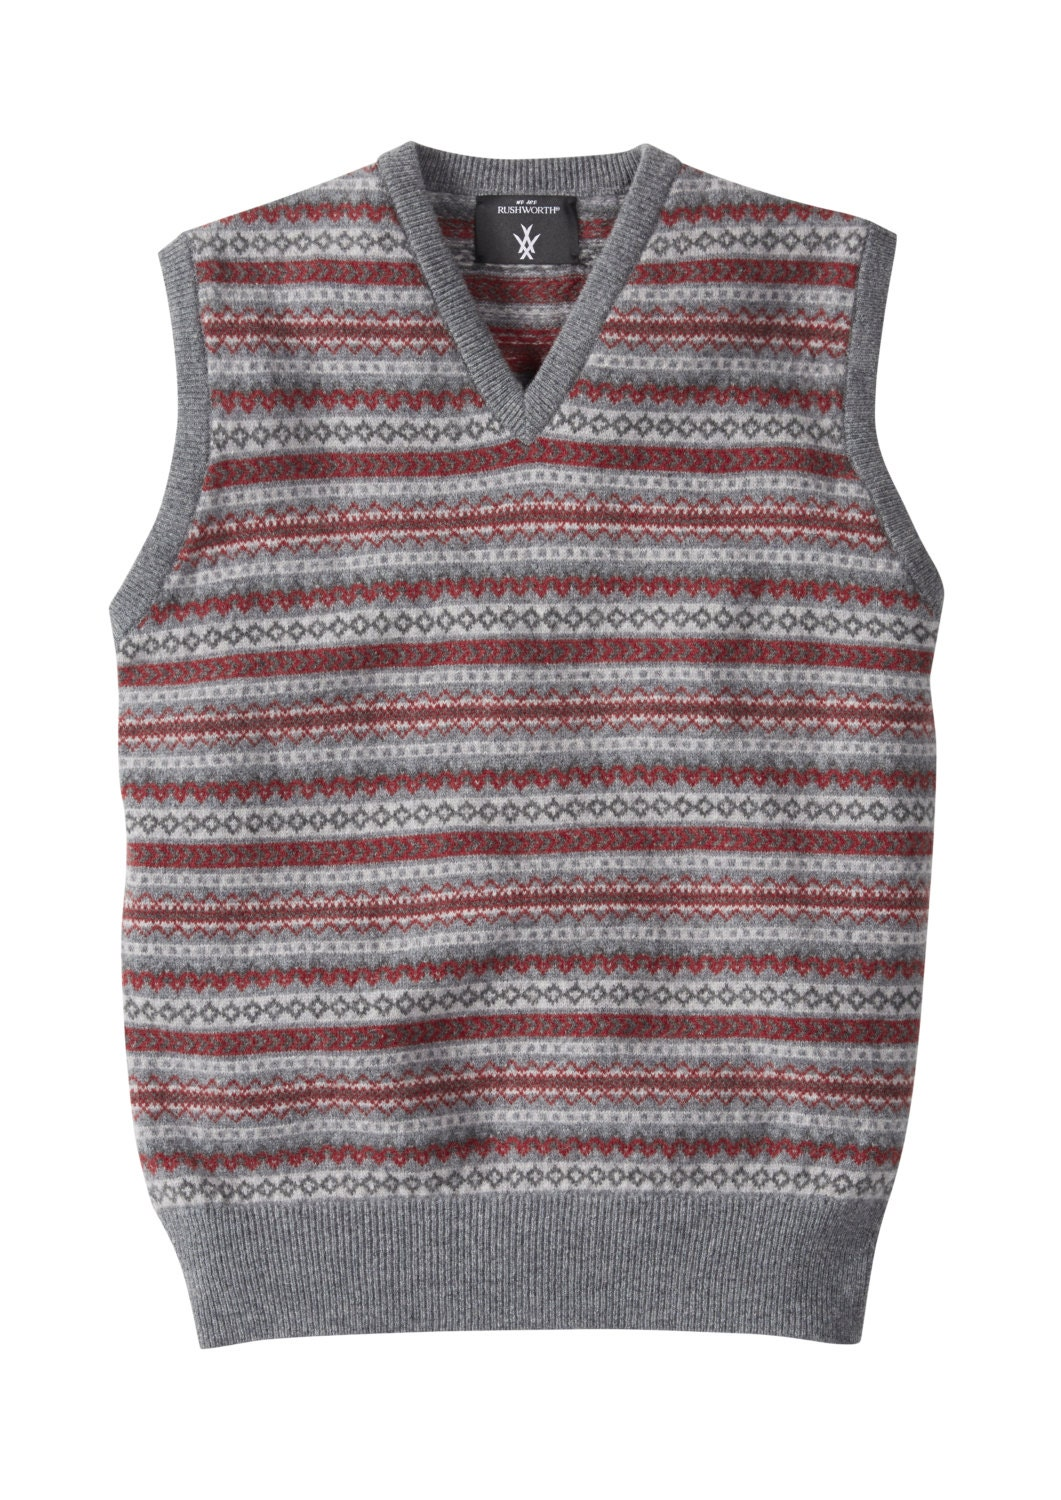 Tanks. Free knitting patterns for tank tops are perfect for the summer. You don't have to wait for the winter to wear a handmade knitted item. These free knitting .